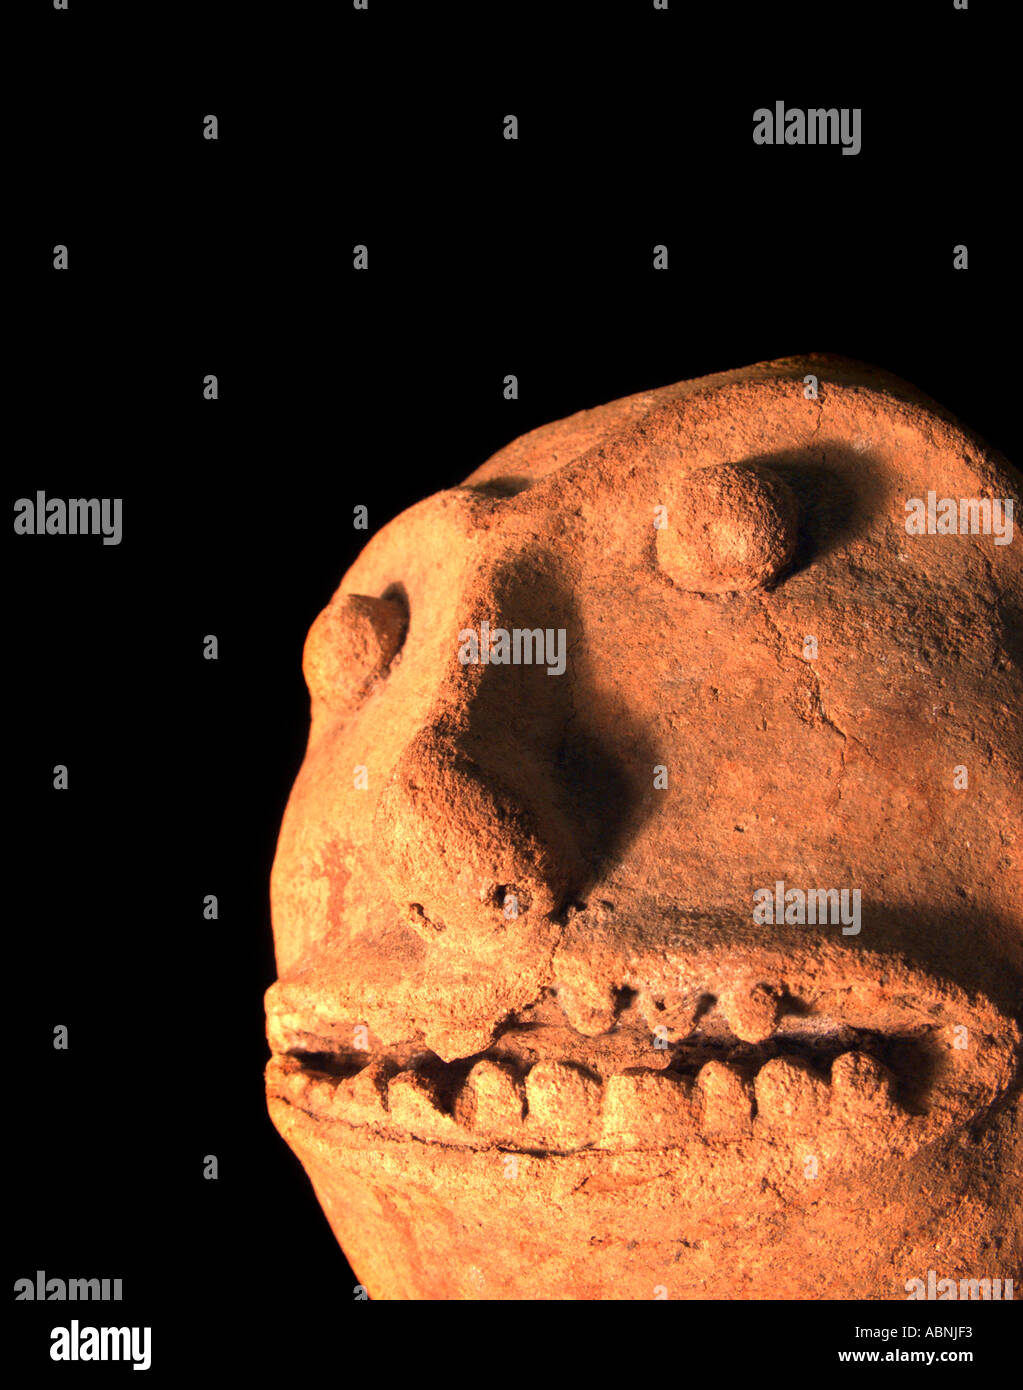 Precolumbian Maya ceramic figurine from Guatemala Demonic features on this terracotta sculpture - Stock Image